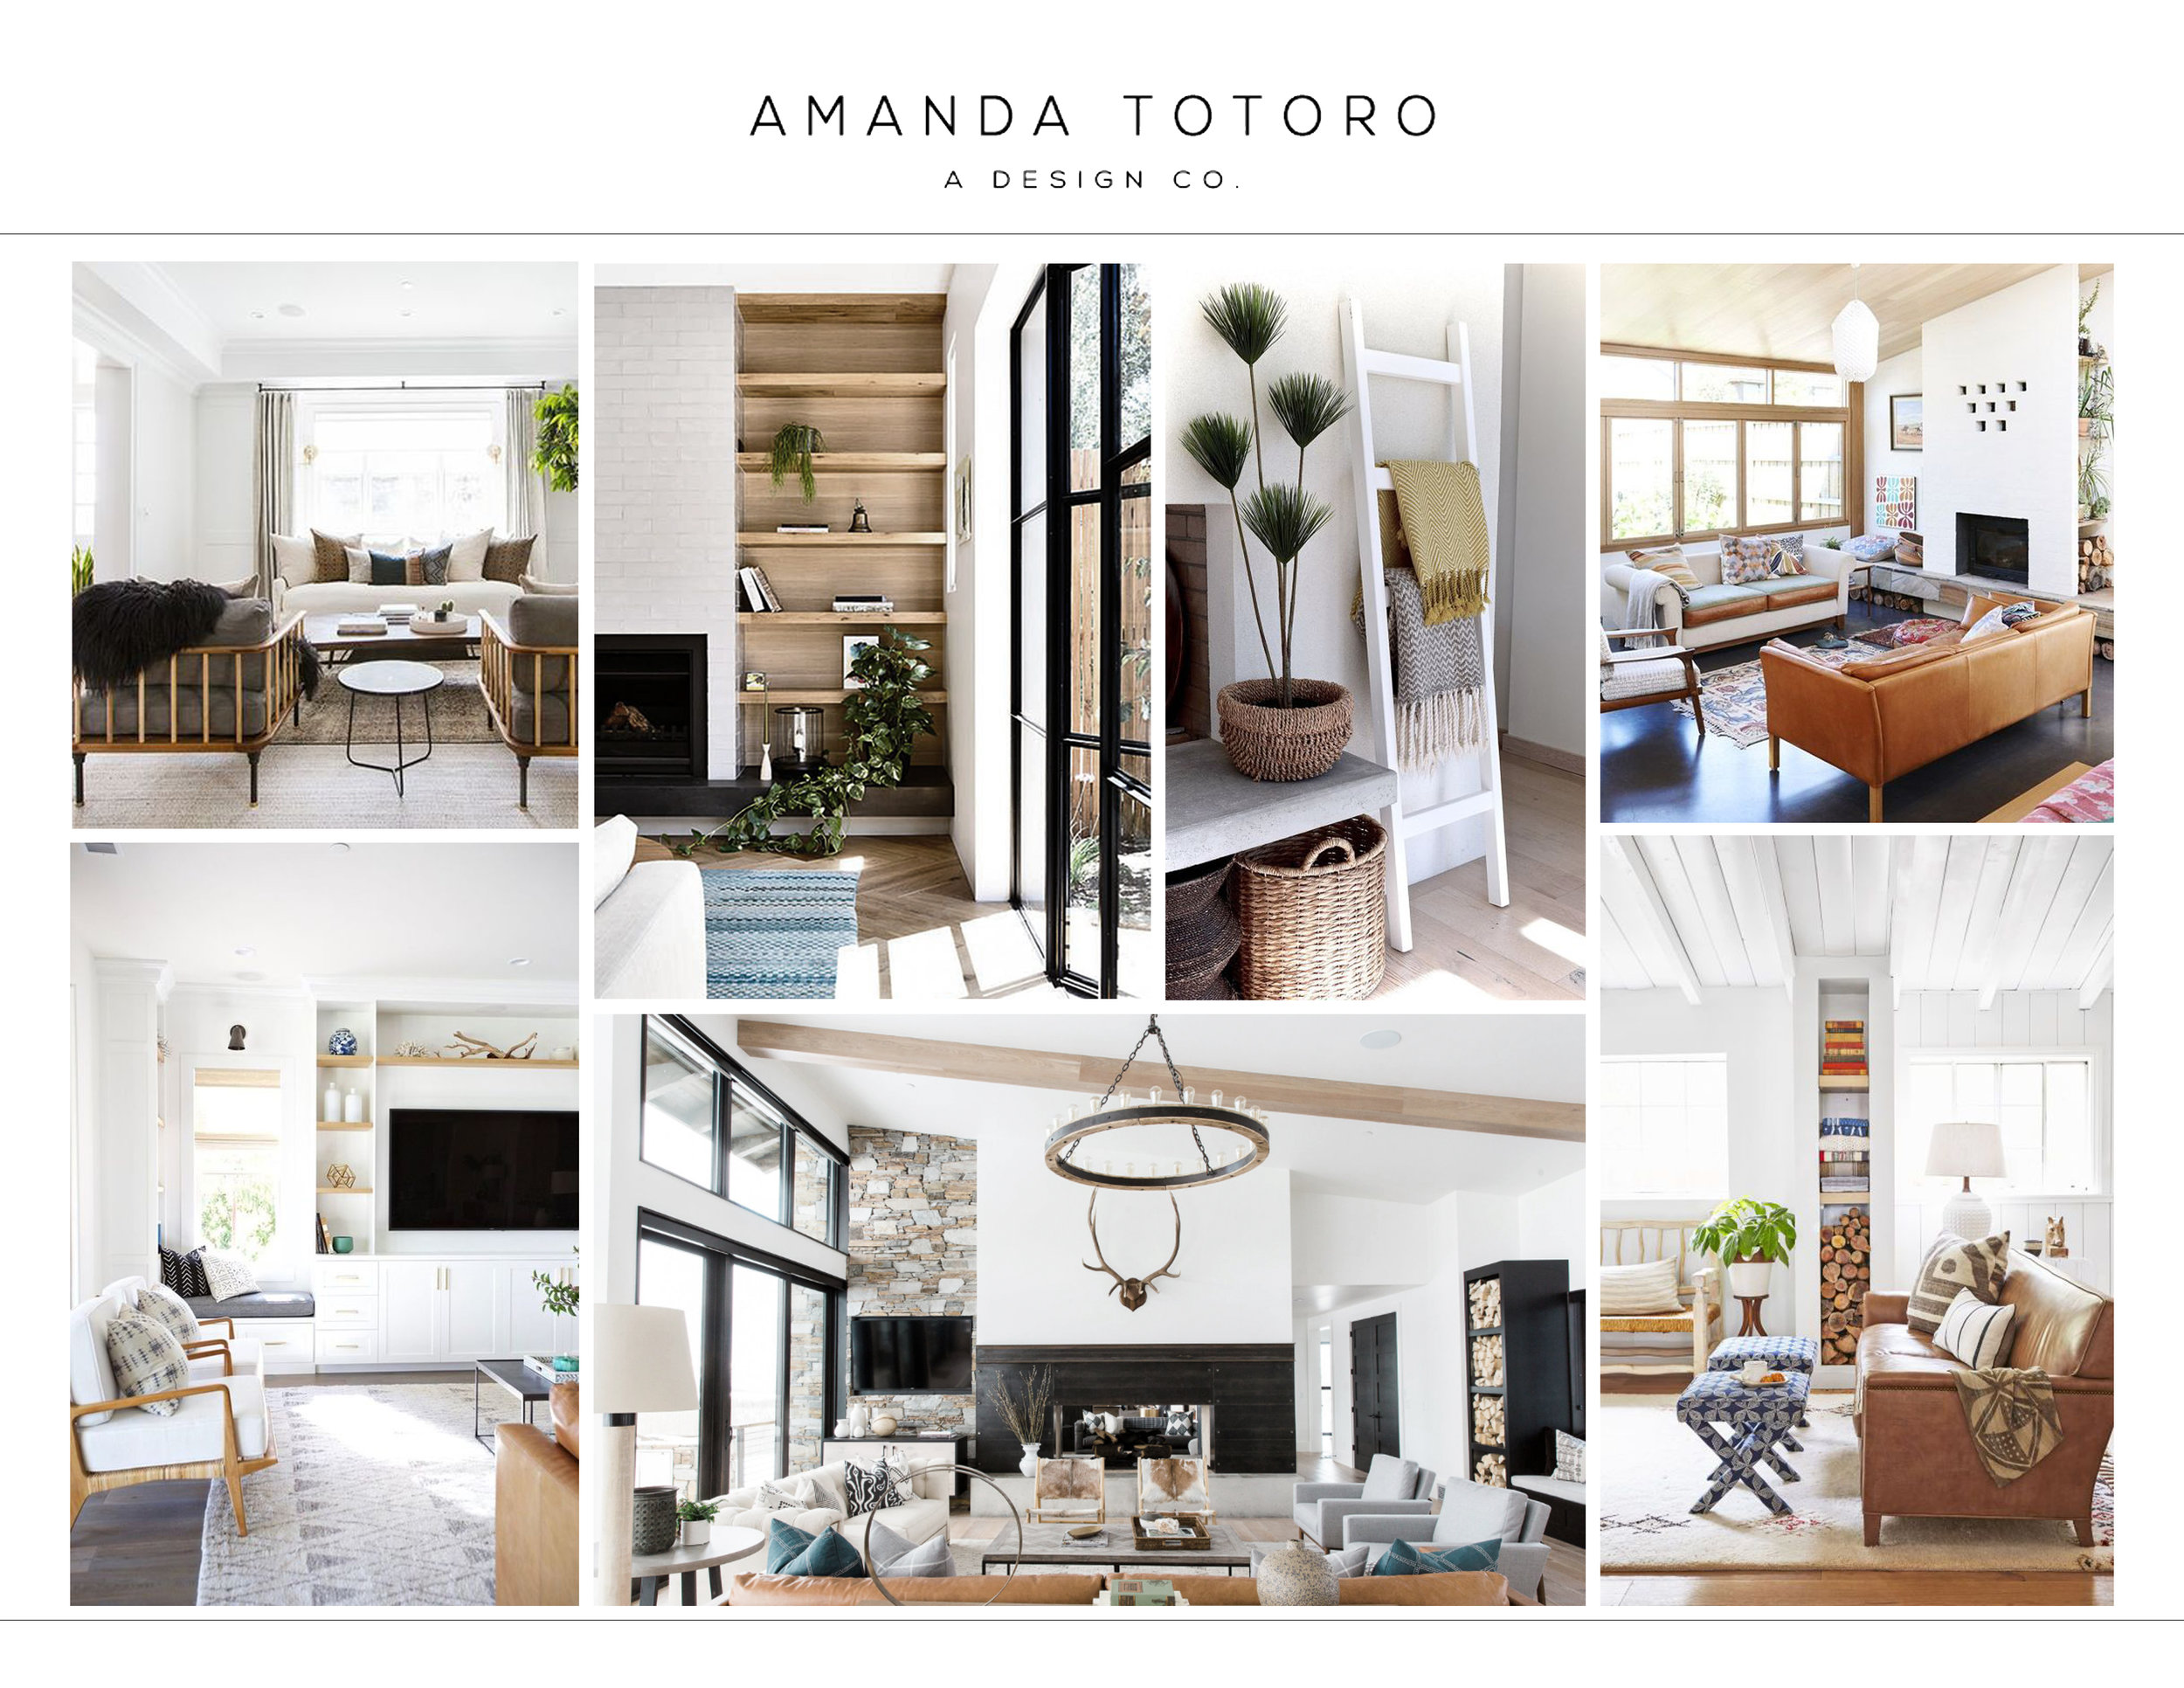 1. CONCEPT BOARD - After viewing a space and listening to client's wants and needs, I'll create a concept board to begin the project.